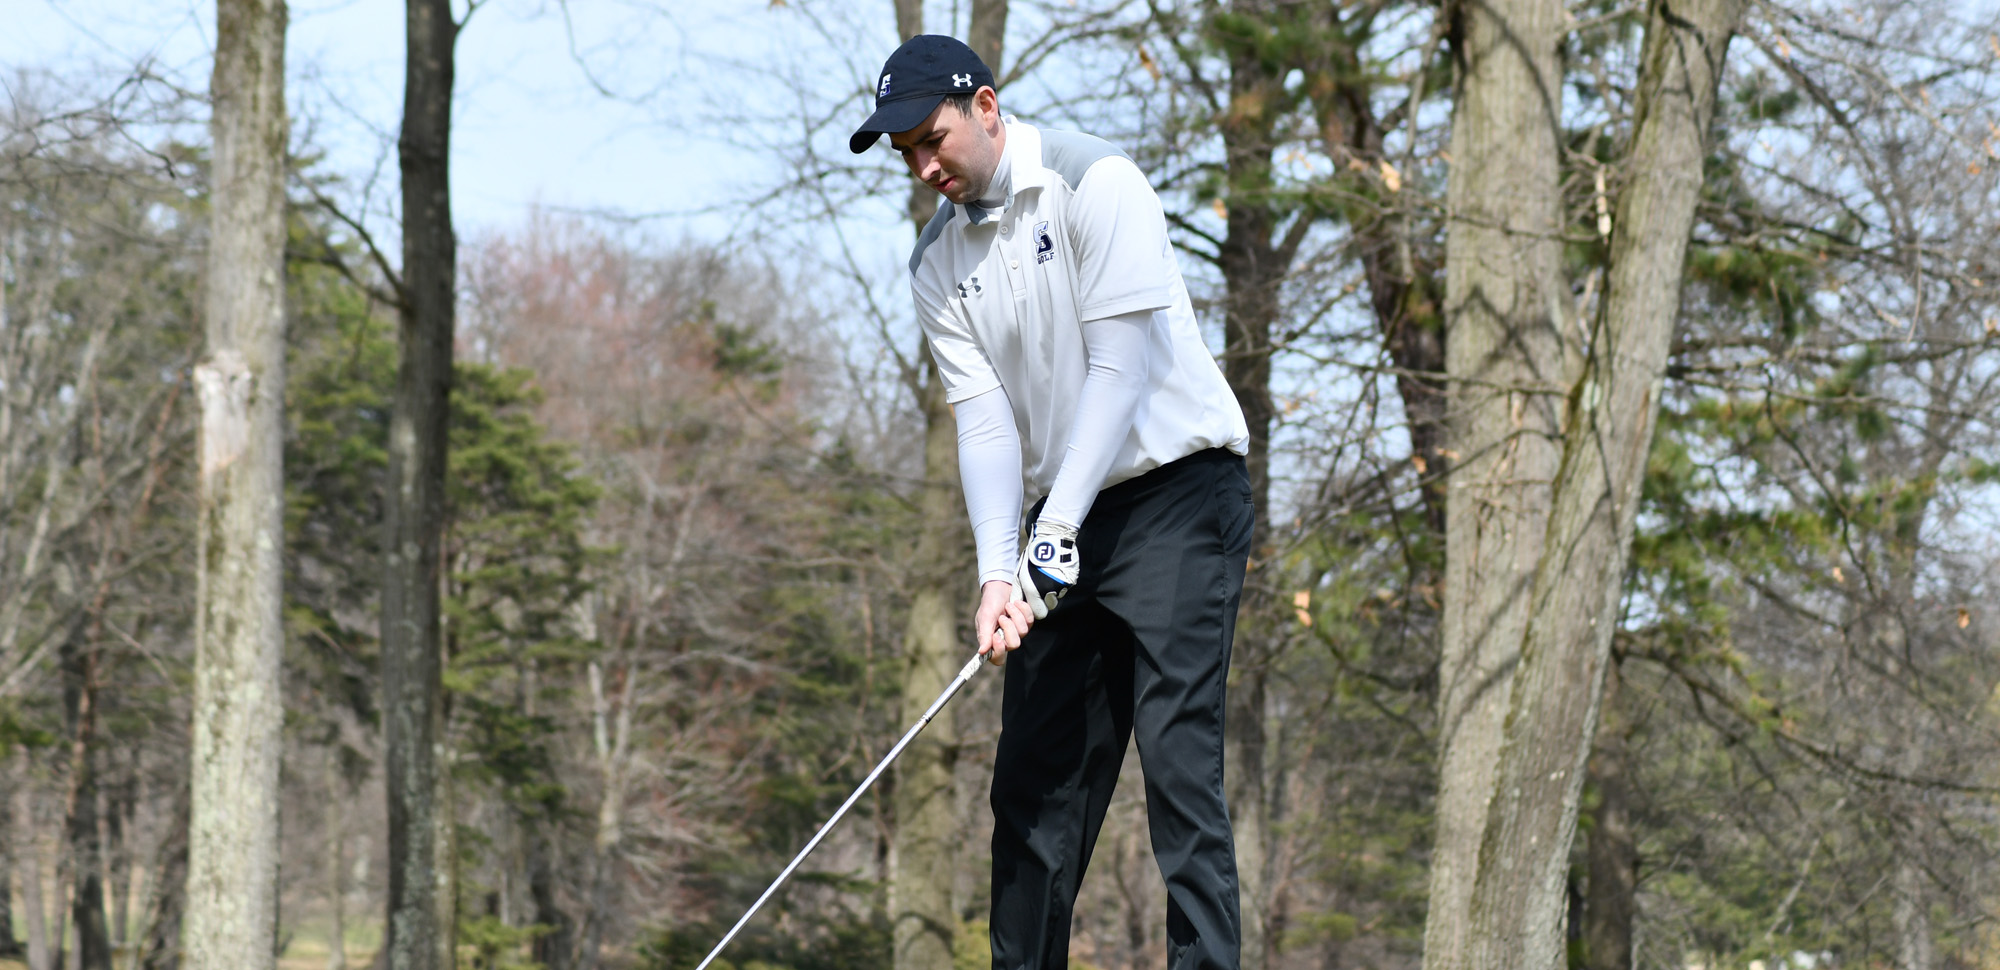 Senior Kyle Hayes was the individual medalist on Thursday as Scranton remained unbeaten on the season with wins over Marywood and Centenary.